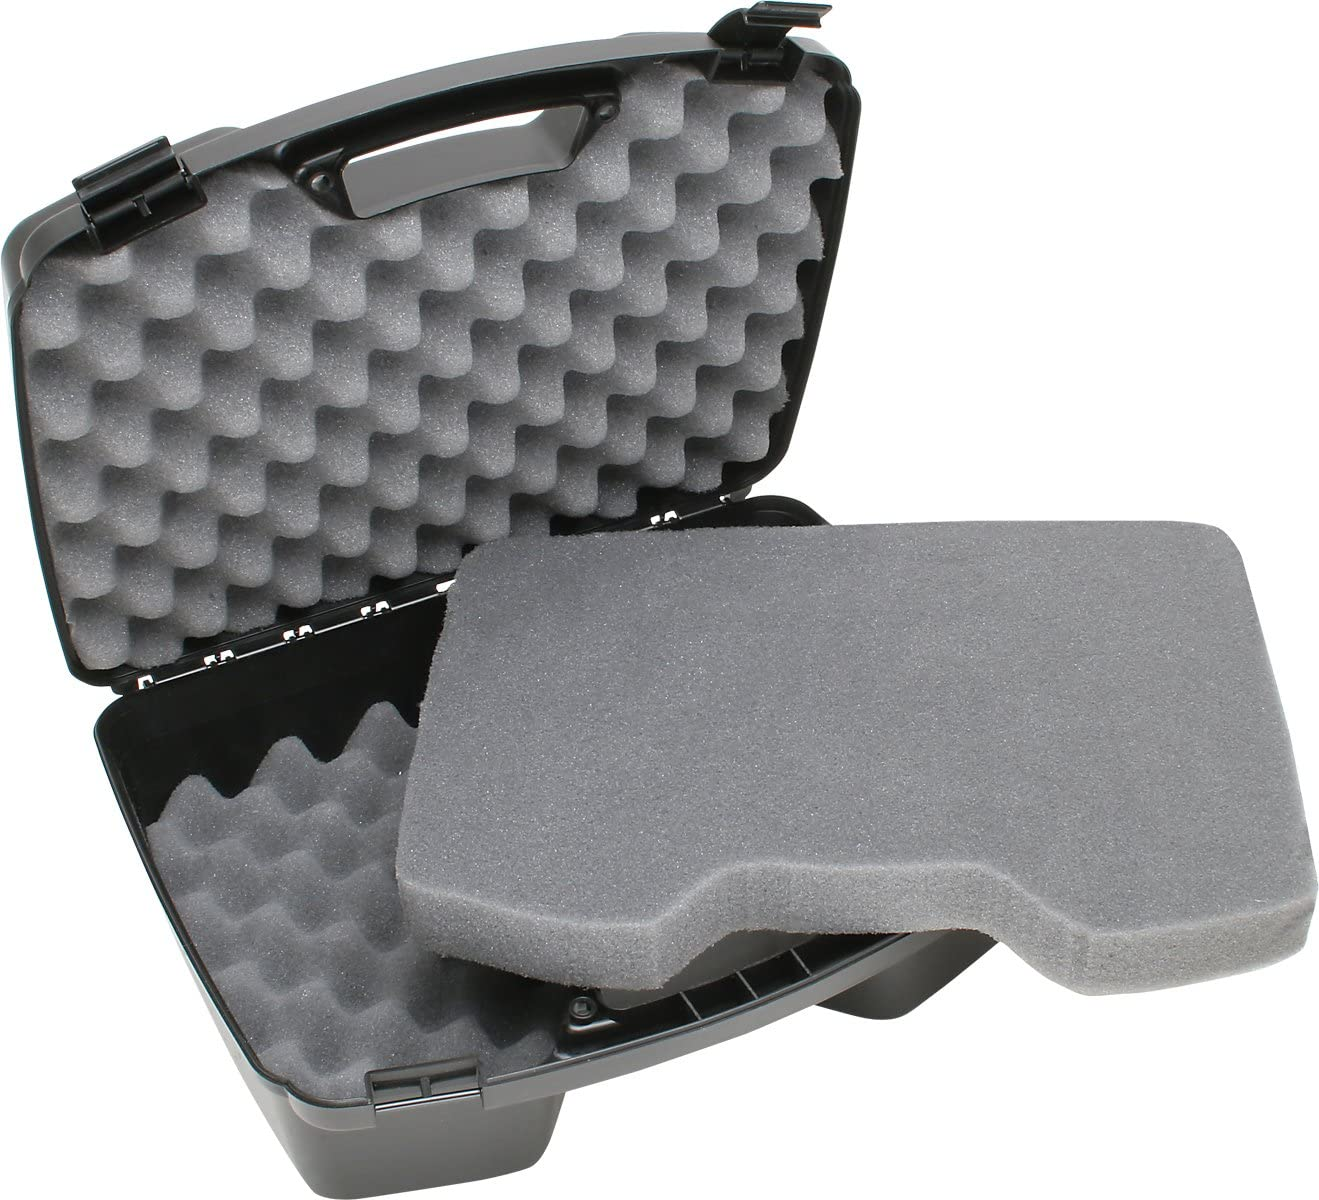 MTM 4 Pistol Handgun Case Up to 8.5-Inch Revolver Barrel